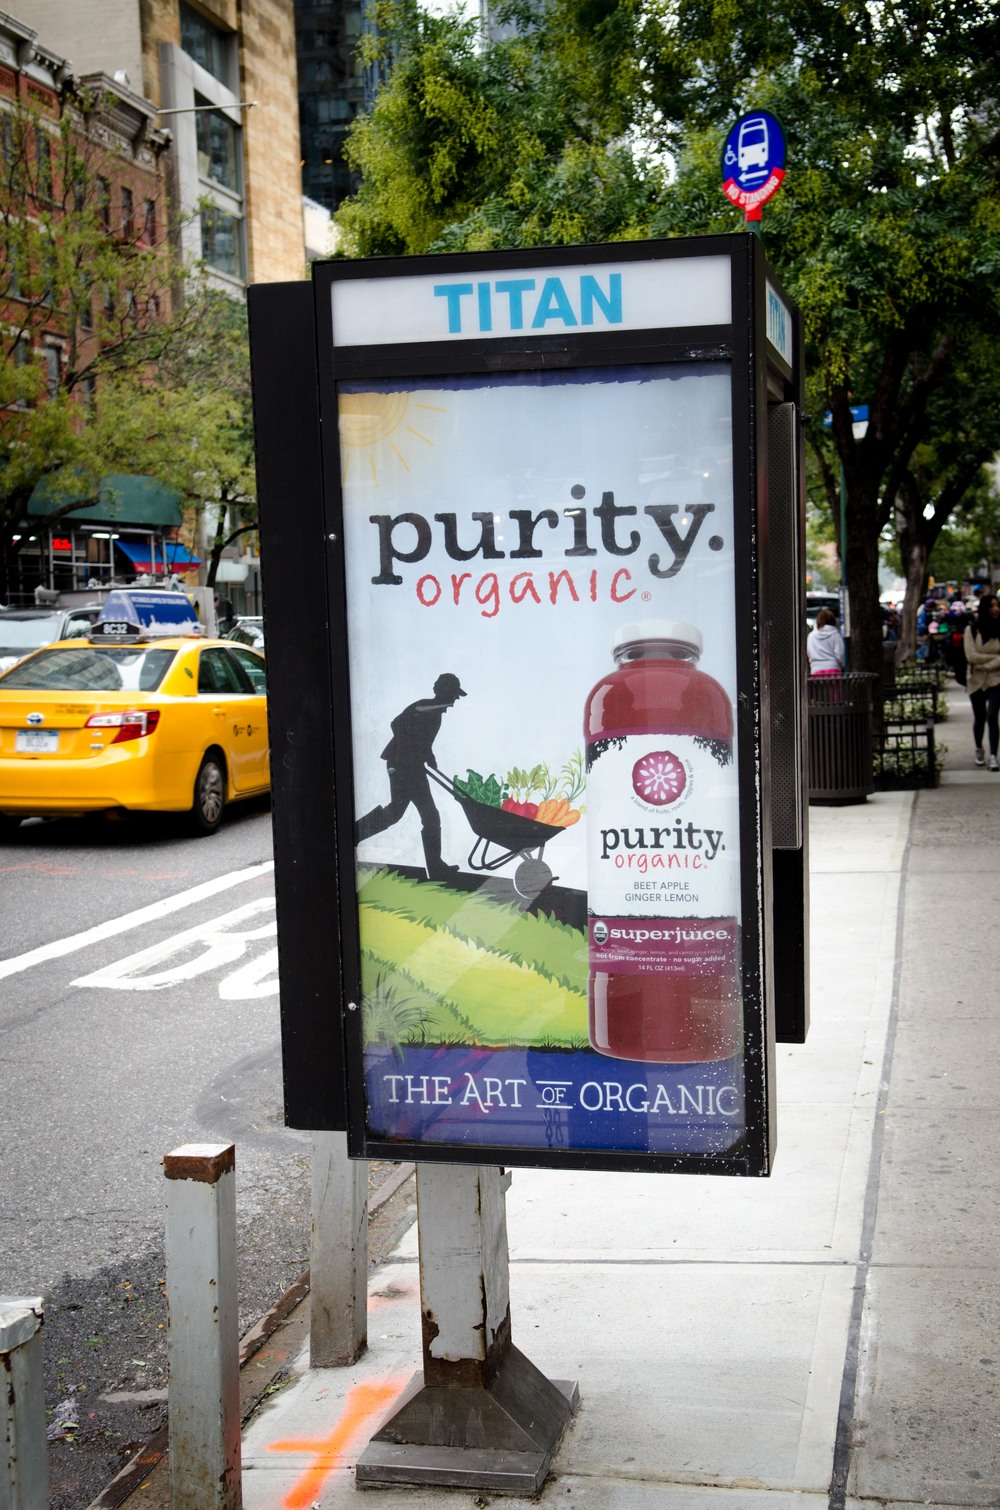 Illustration and creative direction for outdoor campaign in New York City.